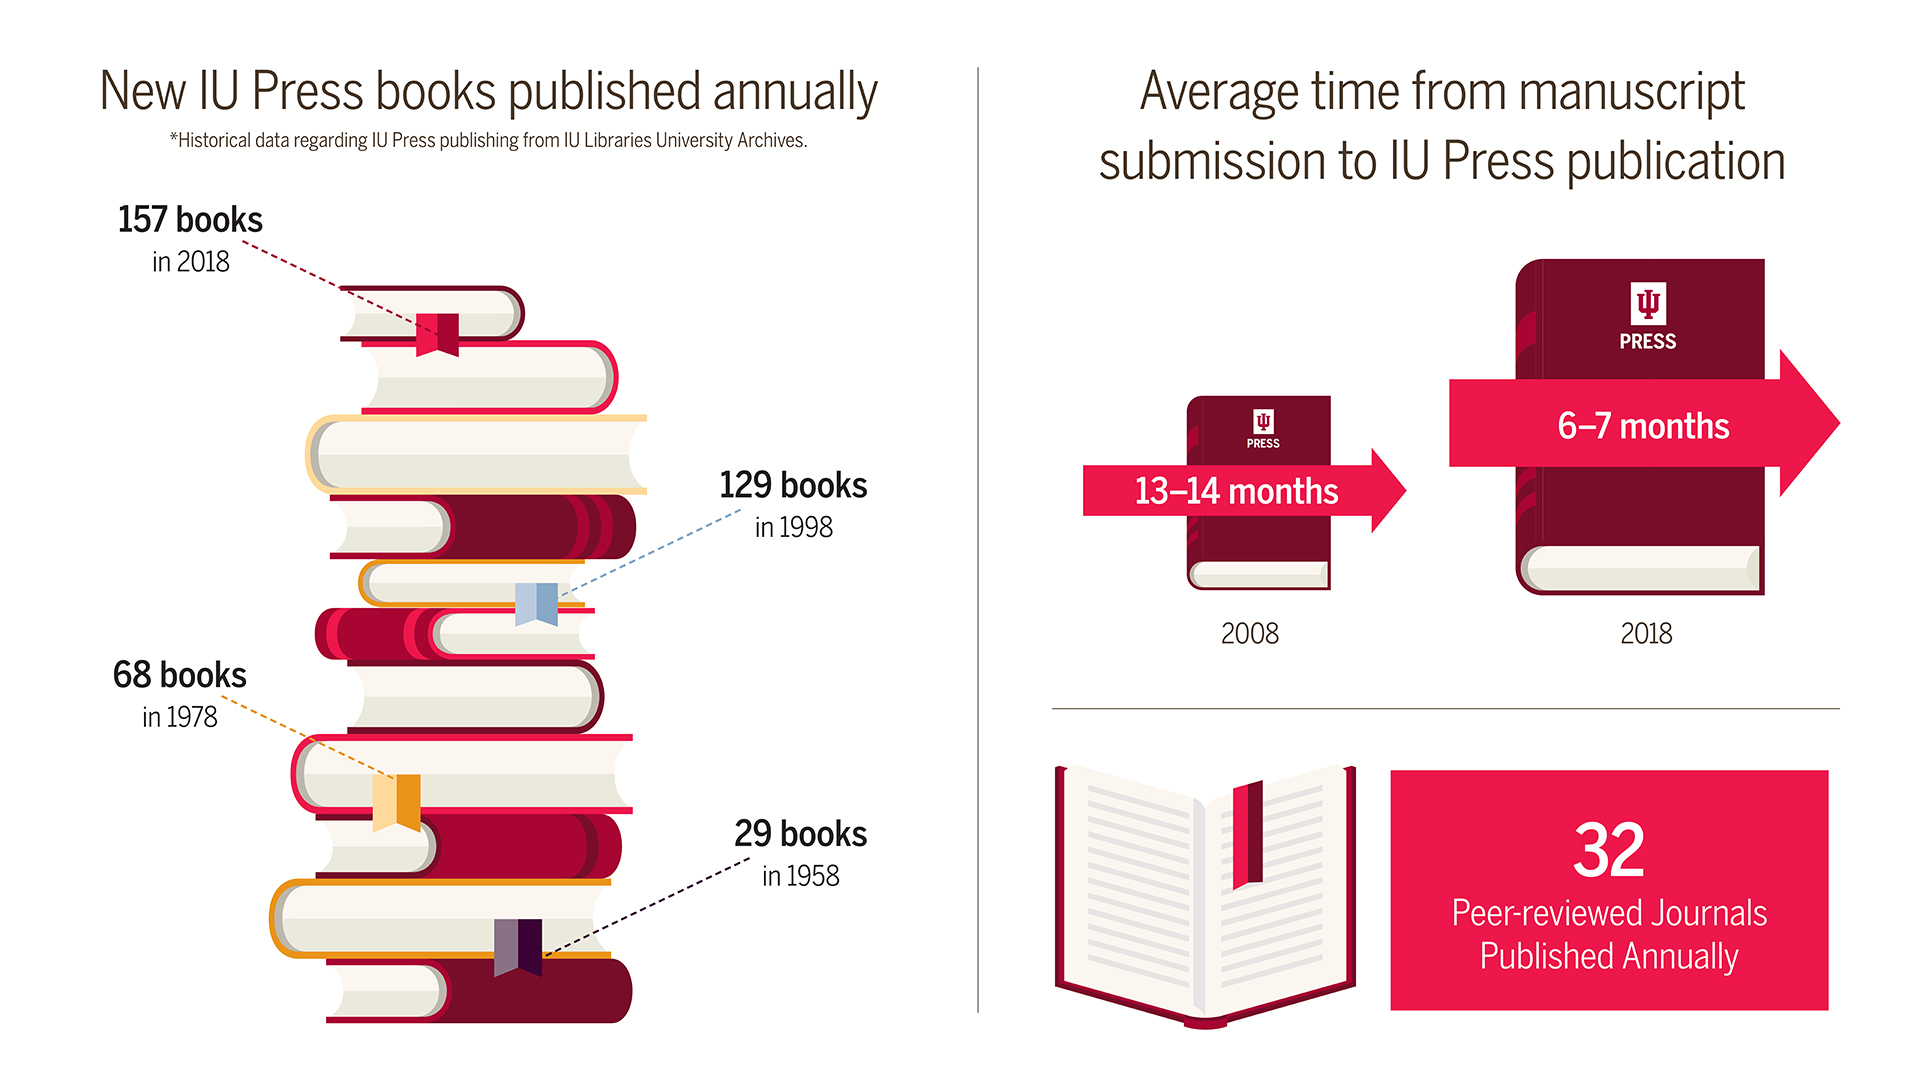 A graph detailing the number of books published each year by IU Press